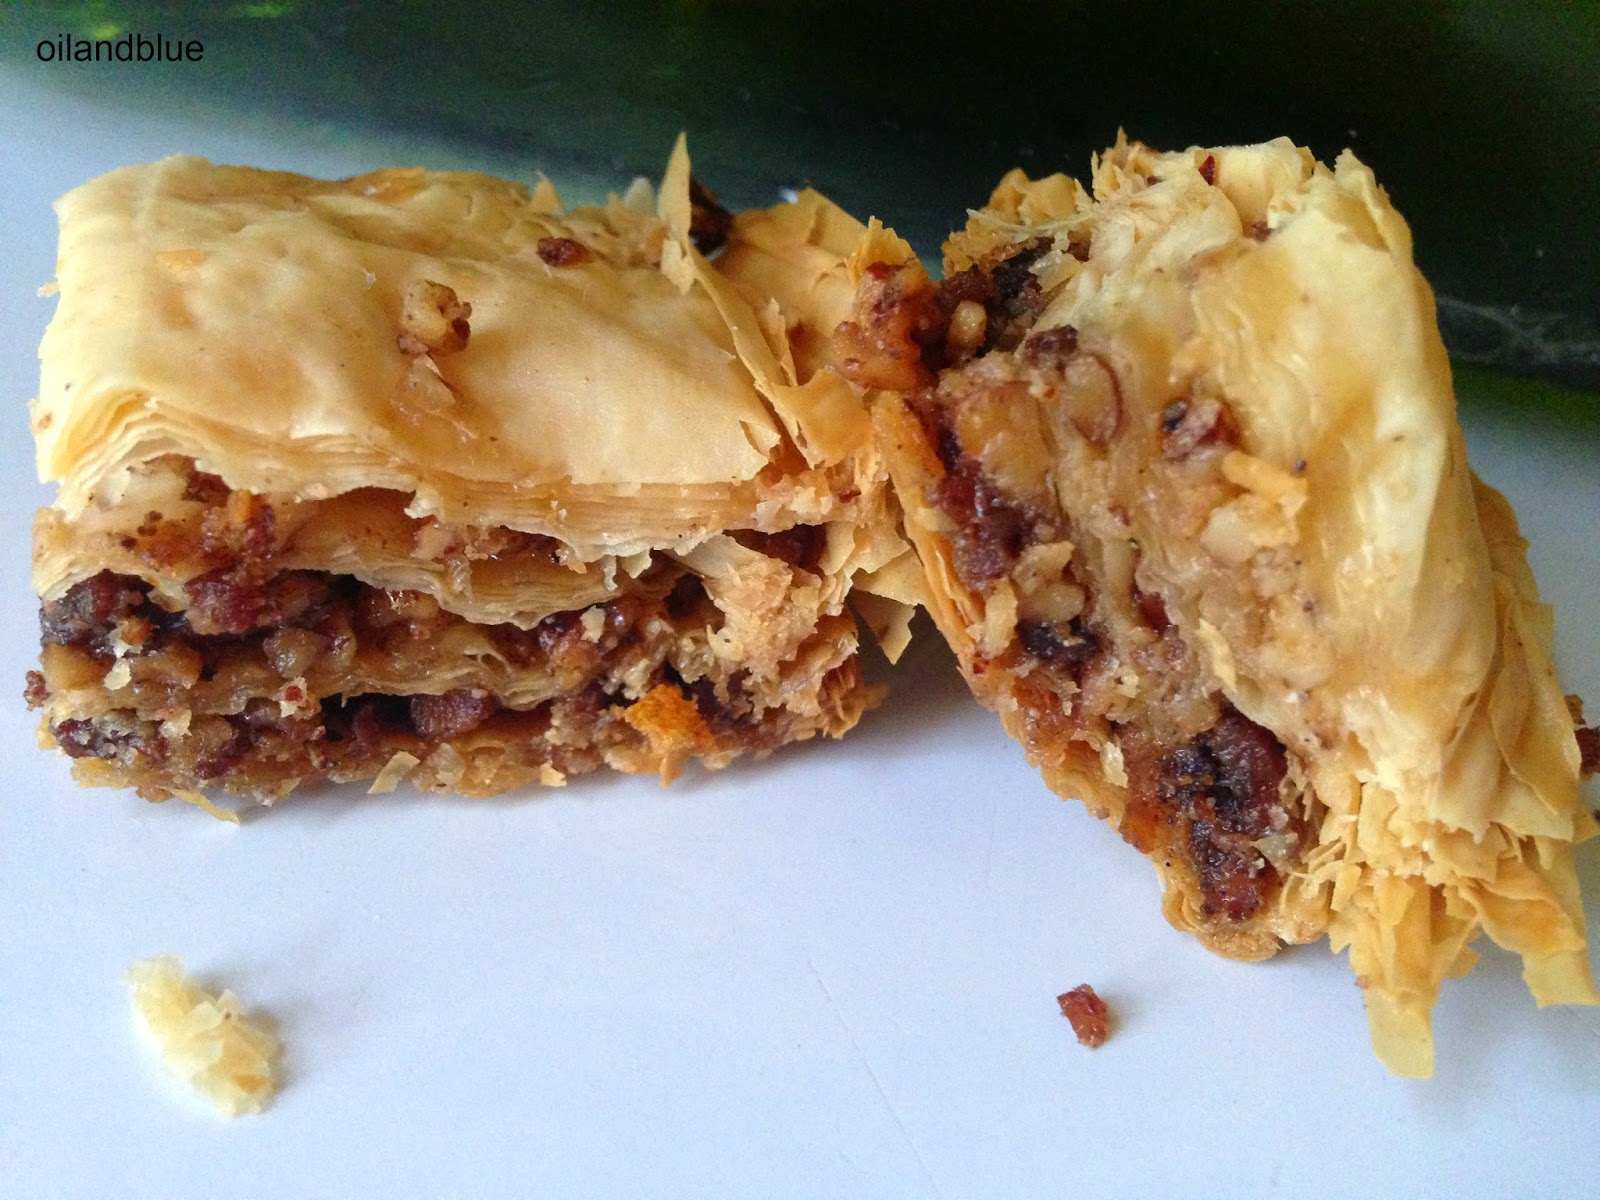 http://oilandblue.blogspot.com/2014/08/bacon-maple-toasted-pecan-baclava.html